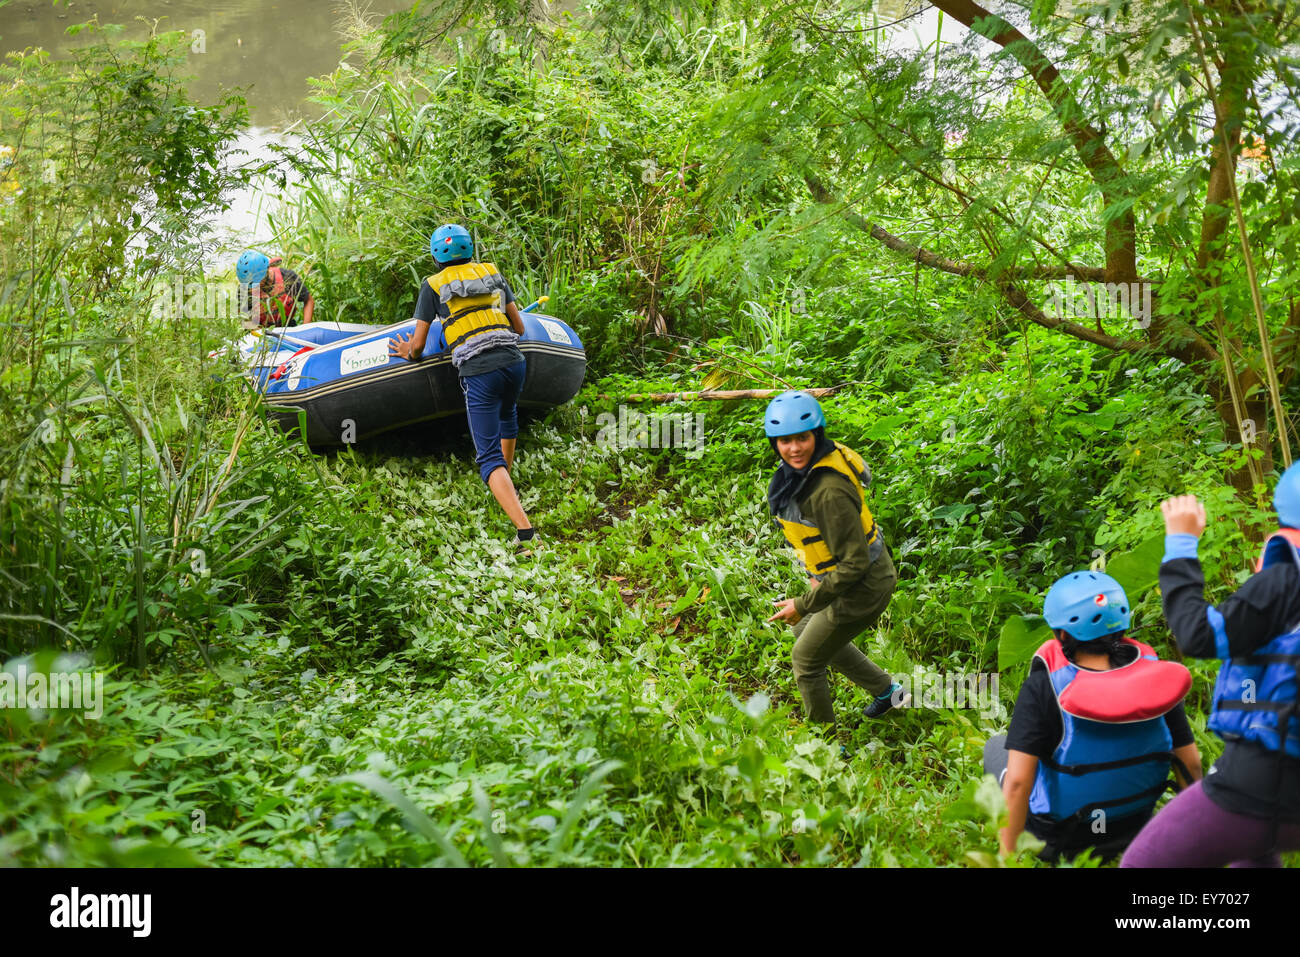 University students getting ready to white water rafting training program in University of Indonesia campus, Depok, - Stock Image